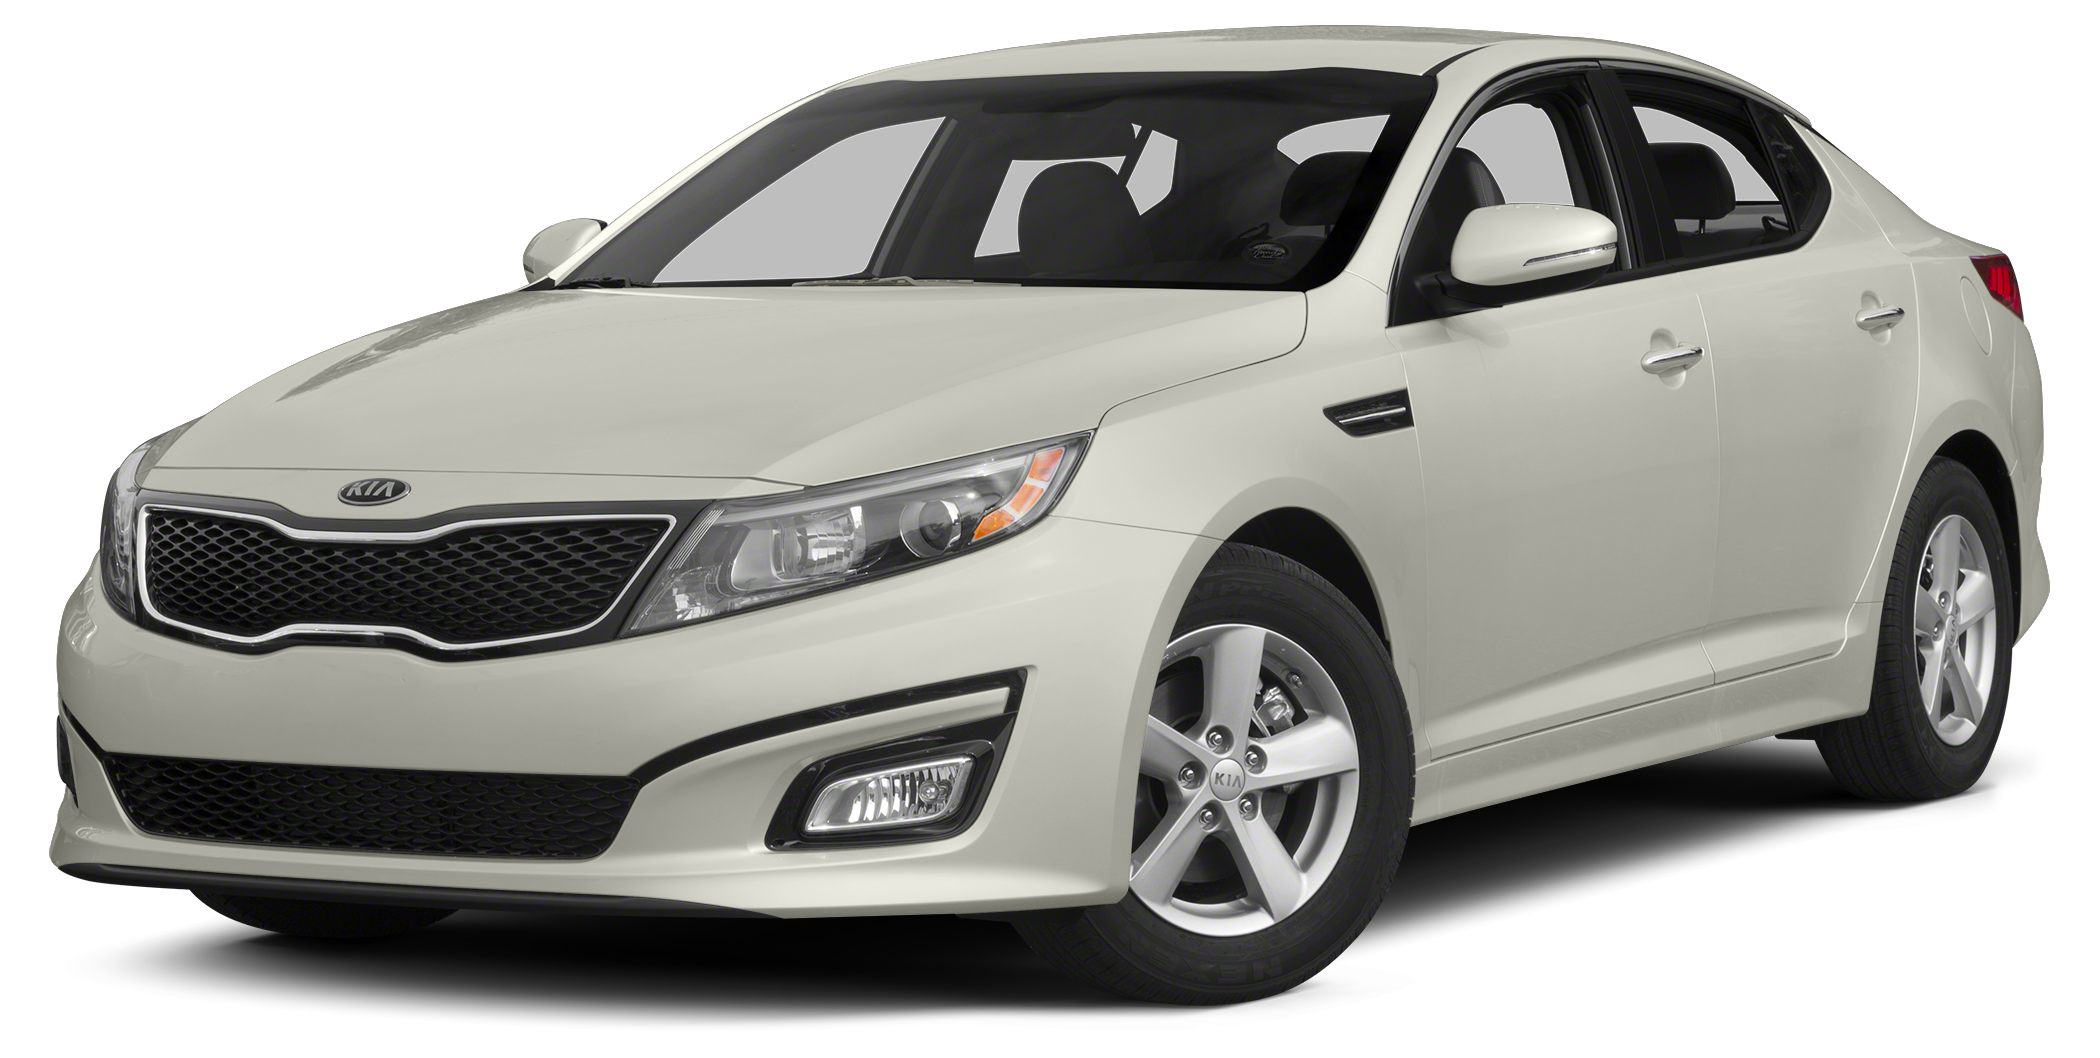 2015 Kia Optima LX Miles 22951Color Snow White Pearl Stock UC2106 VIN 5XXGM4A73FG500201